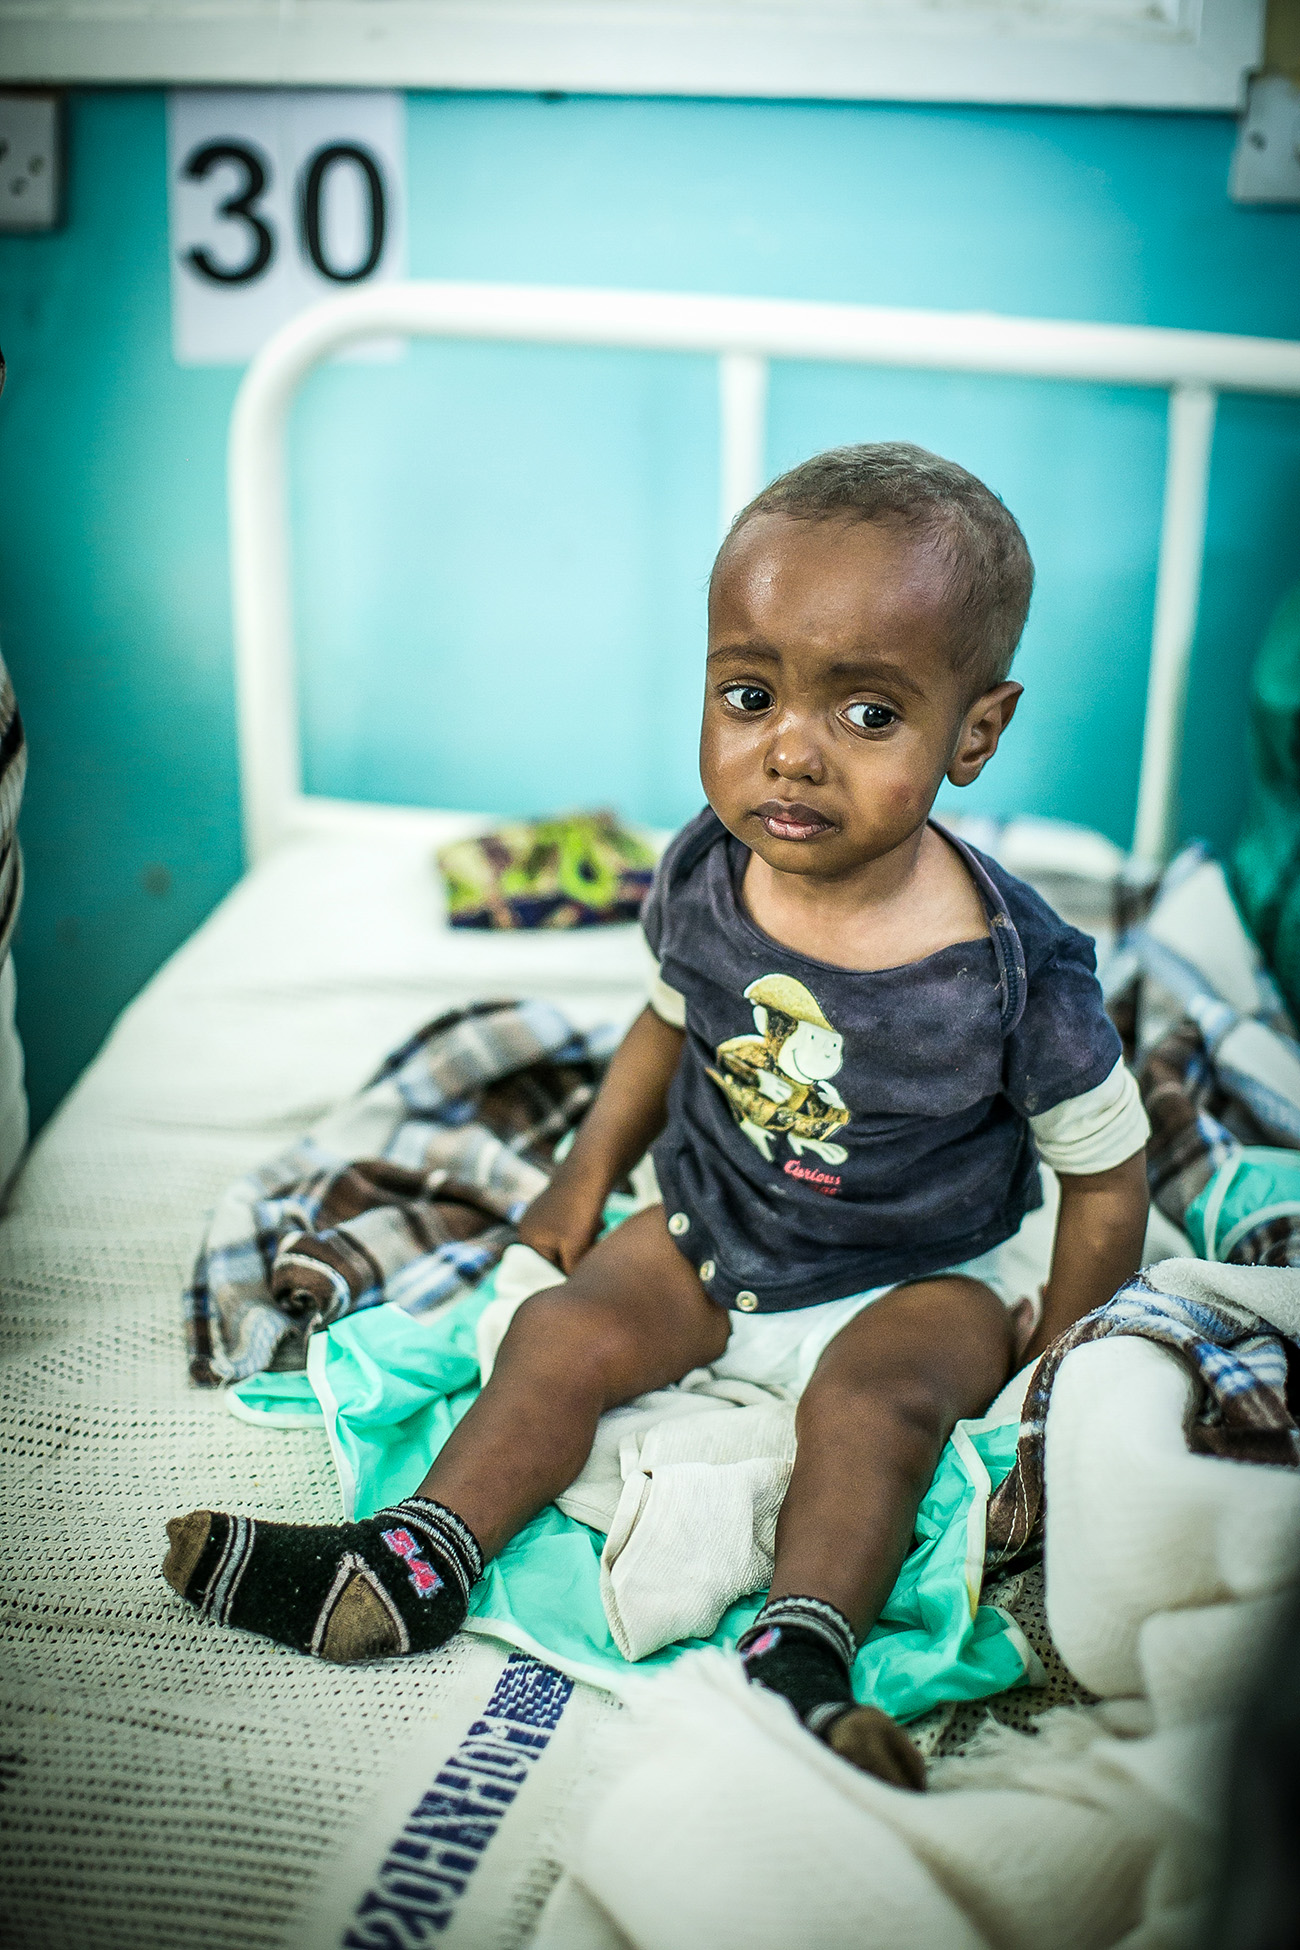 A young patient waits to be examined by doctors from University of Washington in the government hospital in Naivasha, Kenya.